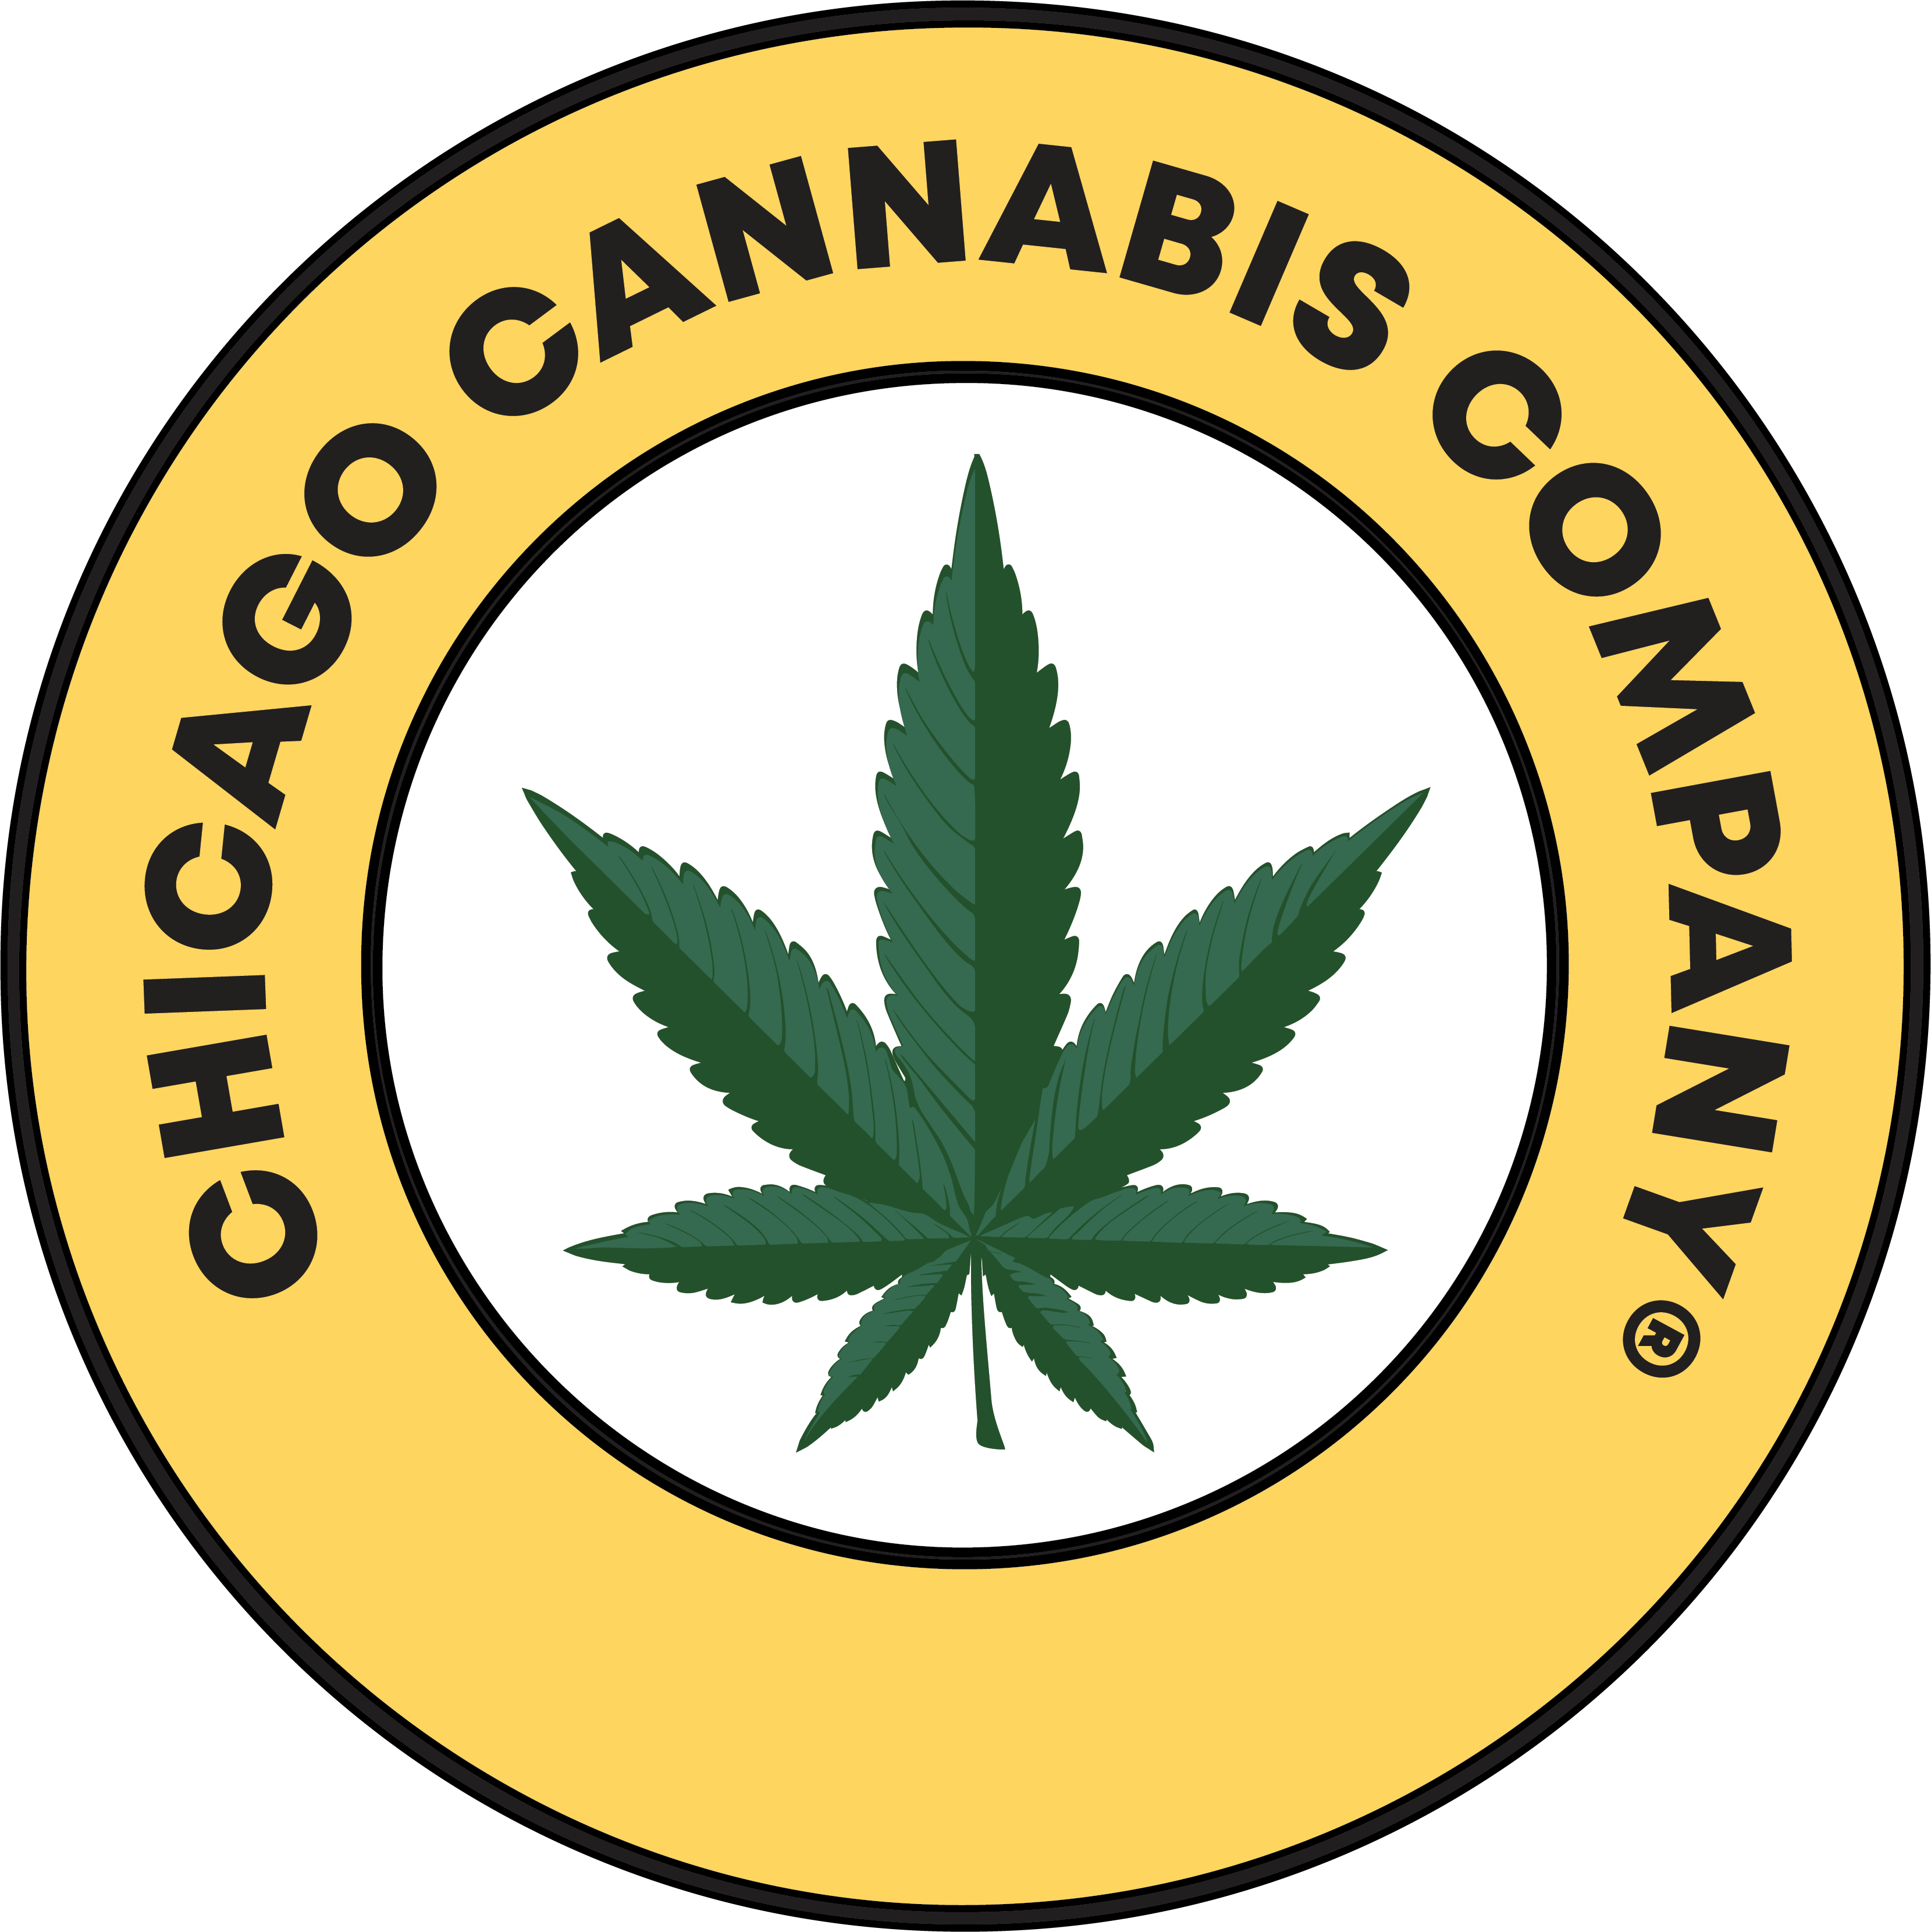 Chicago Cannabis Company